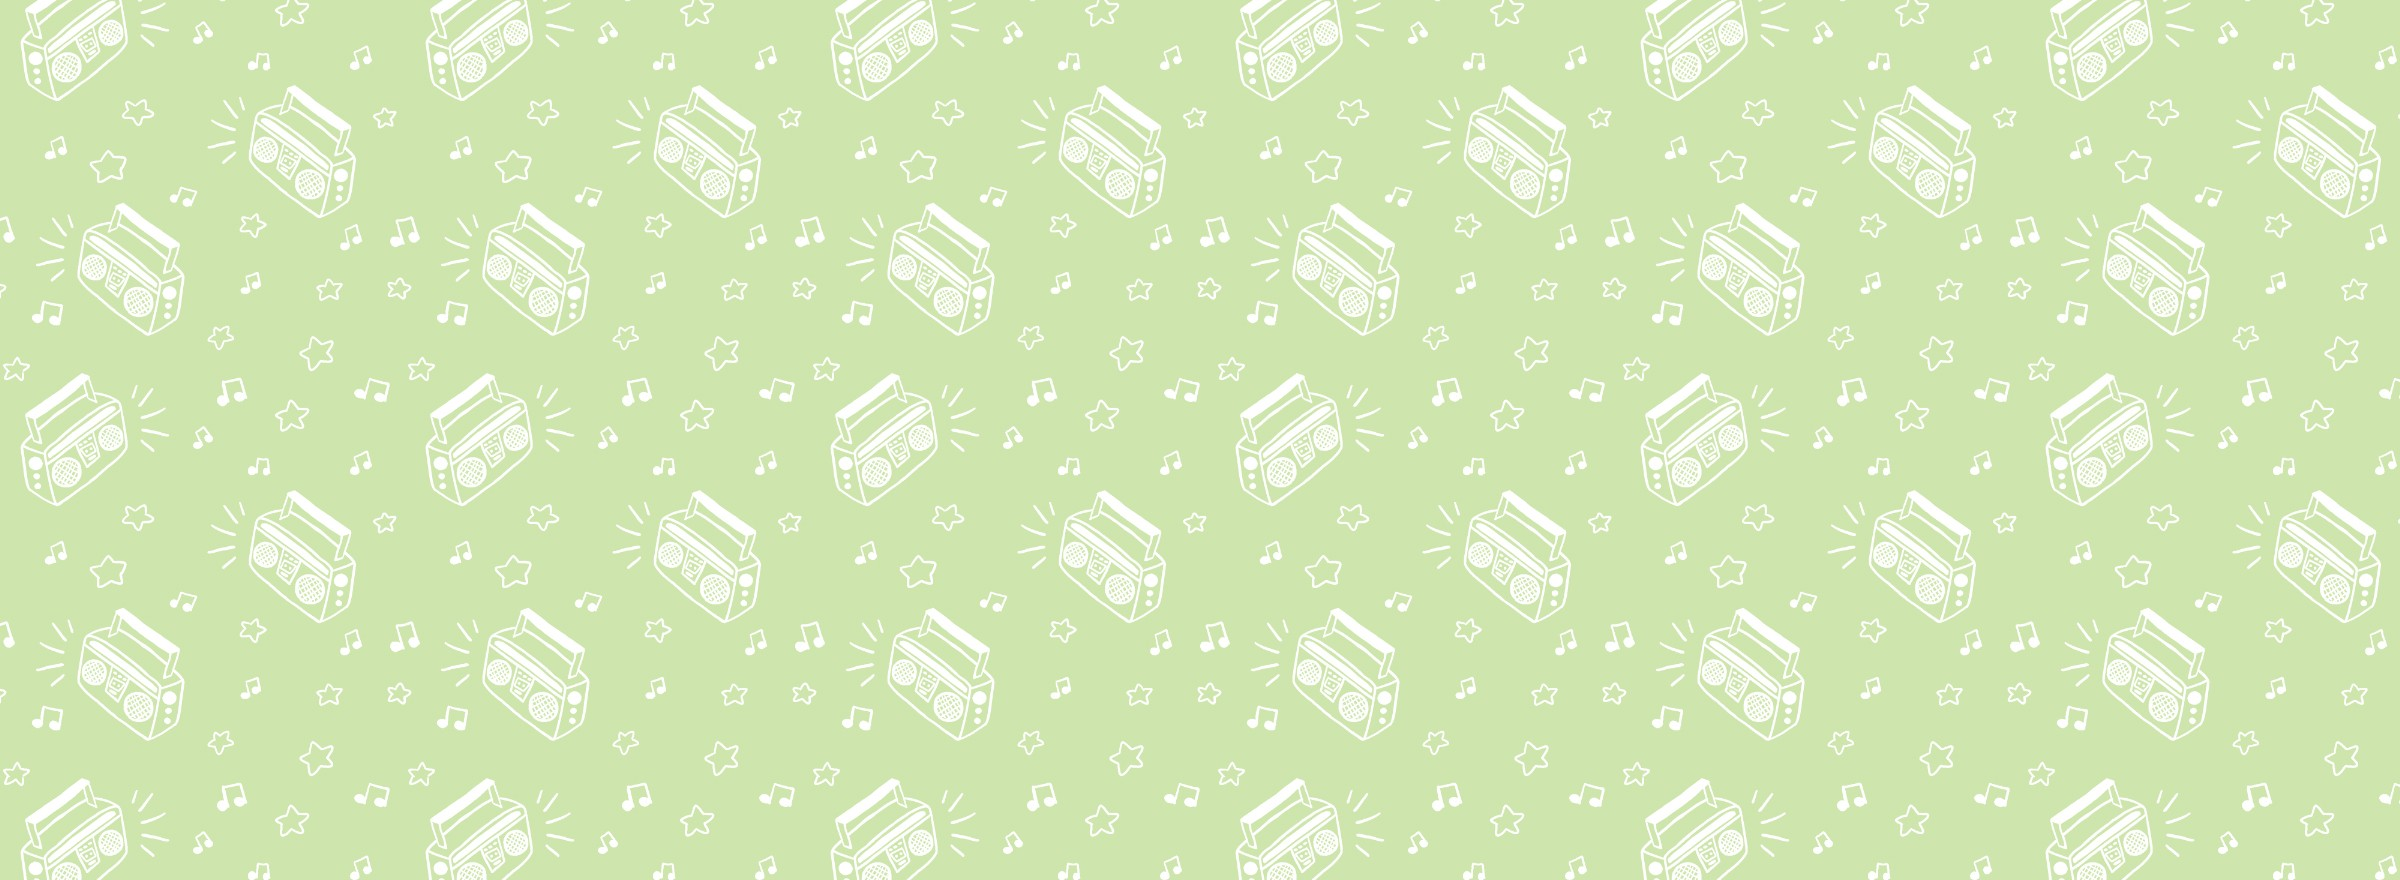 A repeating pattern of boomboxes, music notes, and stars with simple white linework on a light green background. The pattern is arranged in a scatter format.